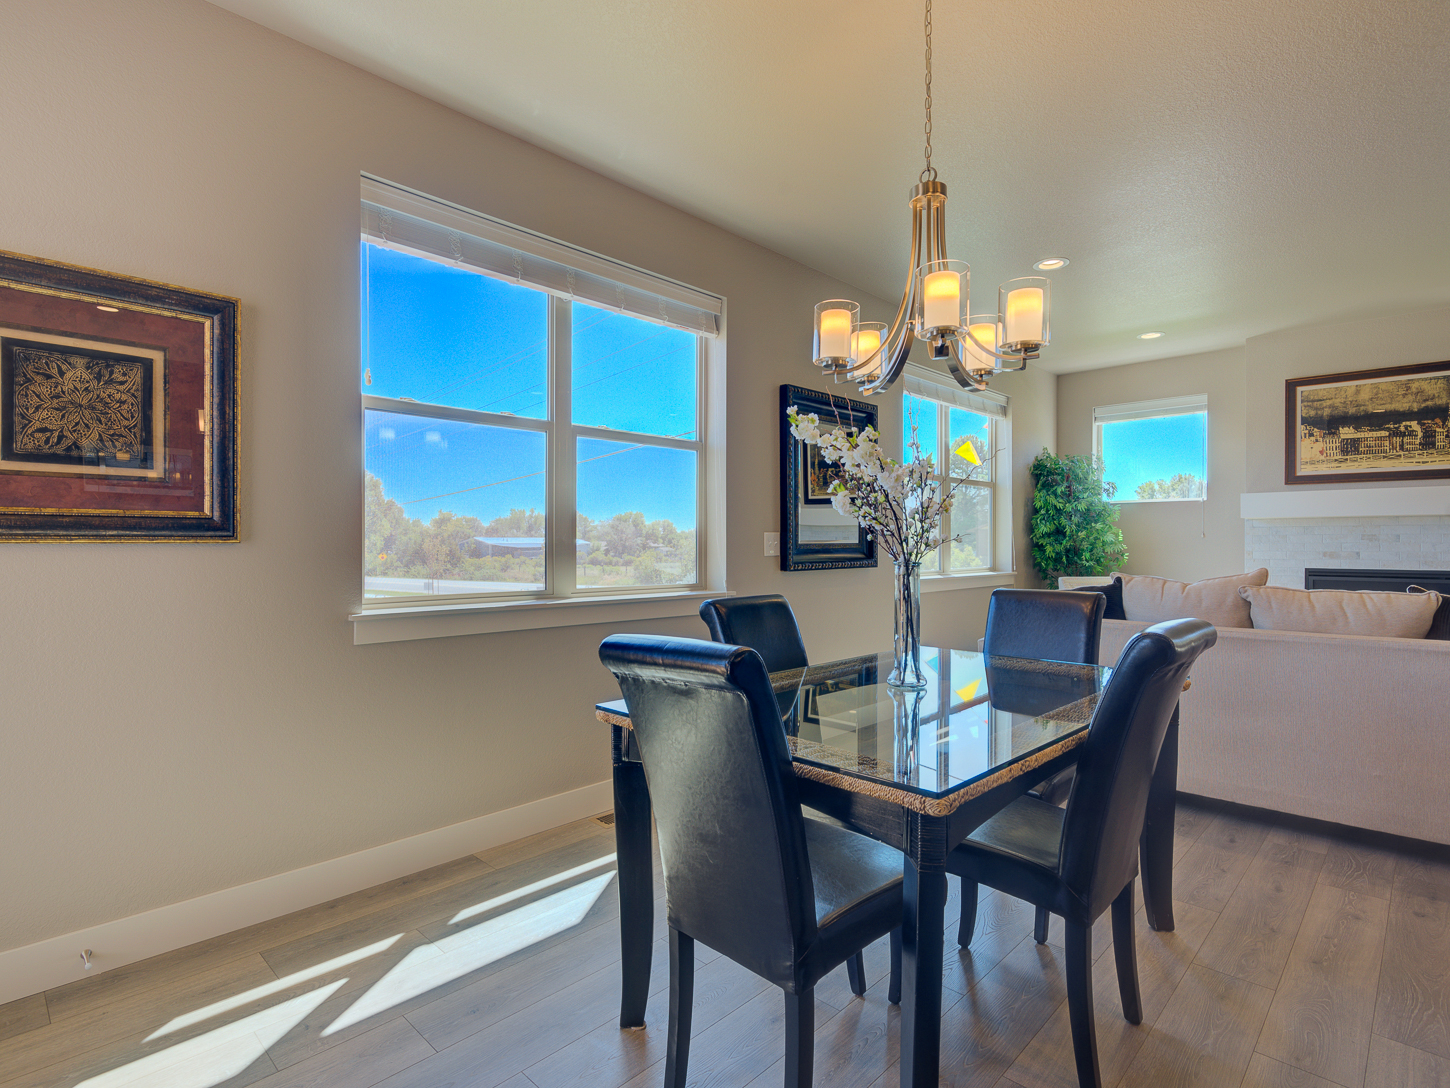 12_vail_loveland_dining_20area_dream_20homes_20for_20sale